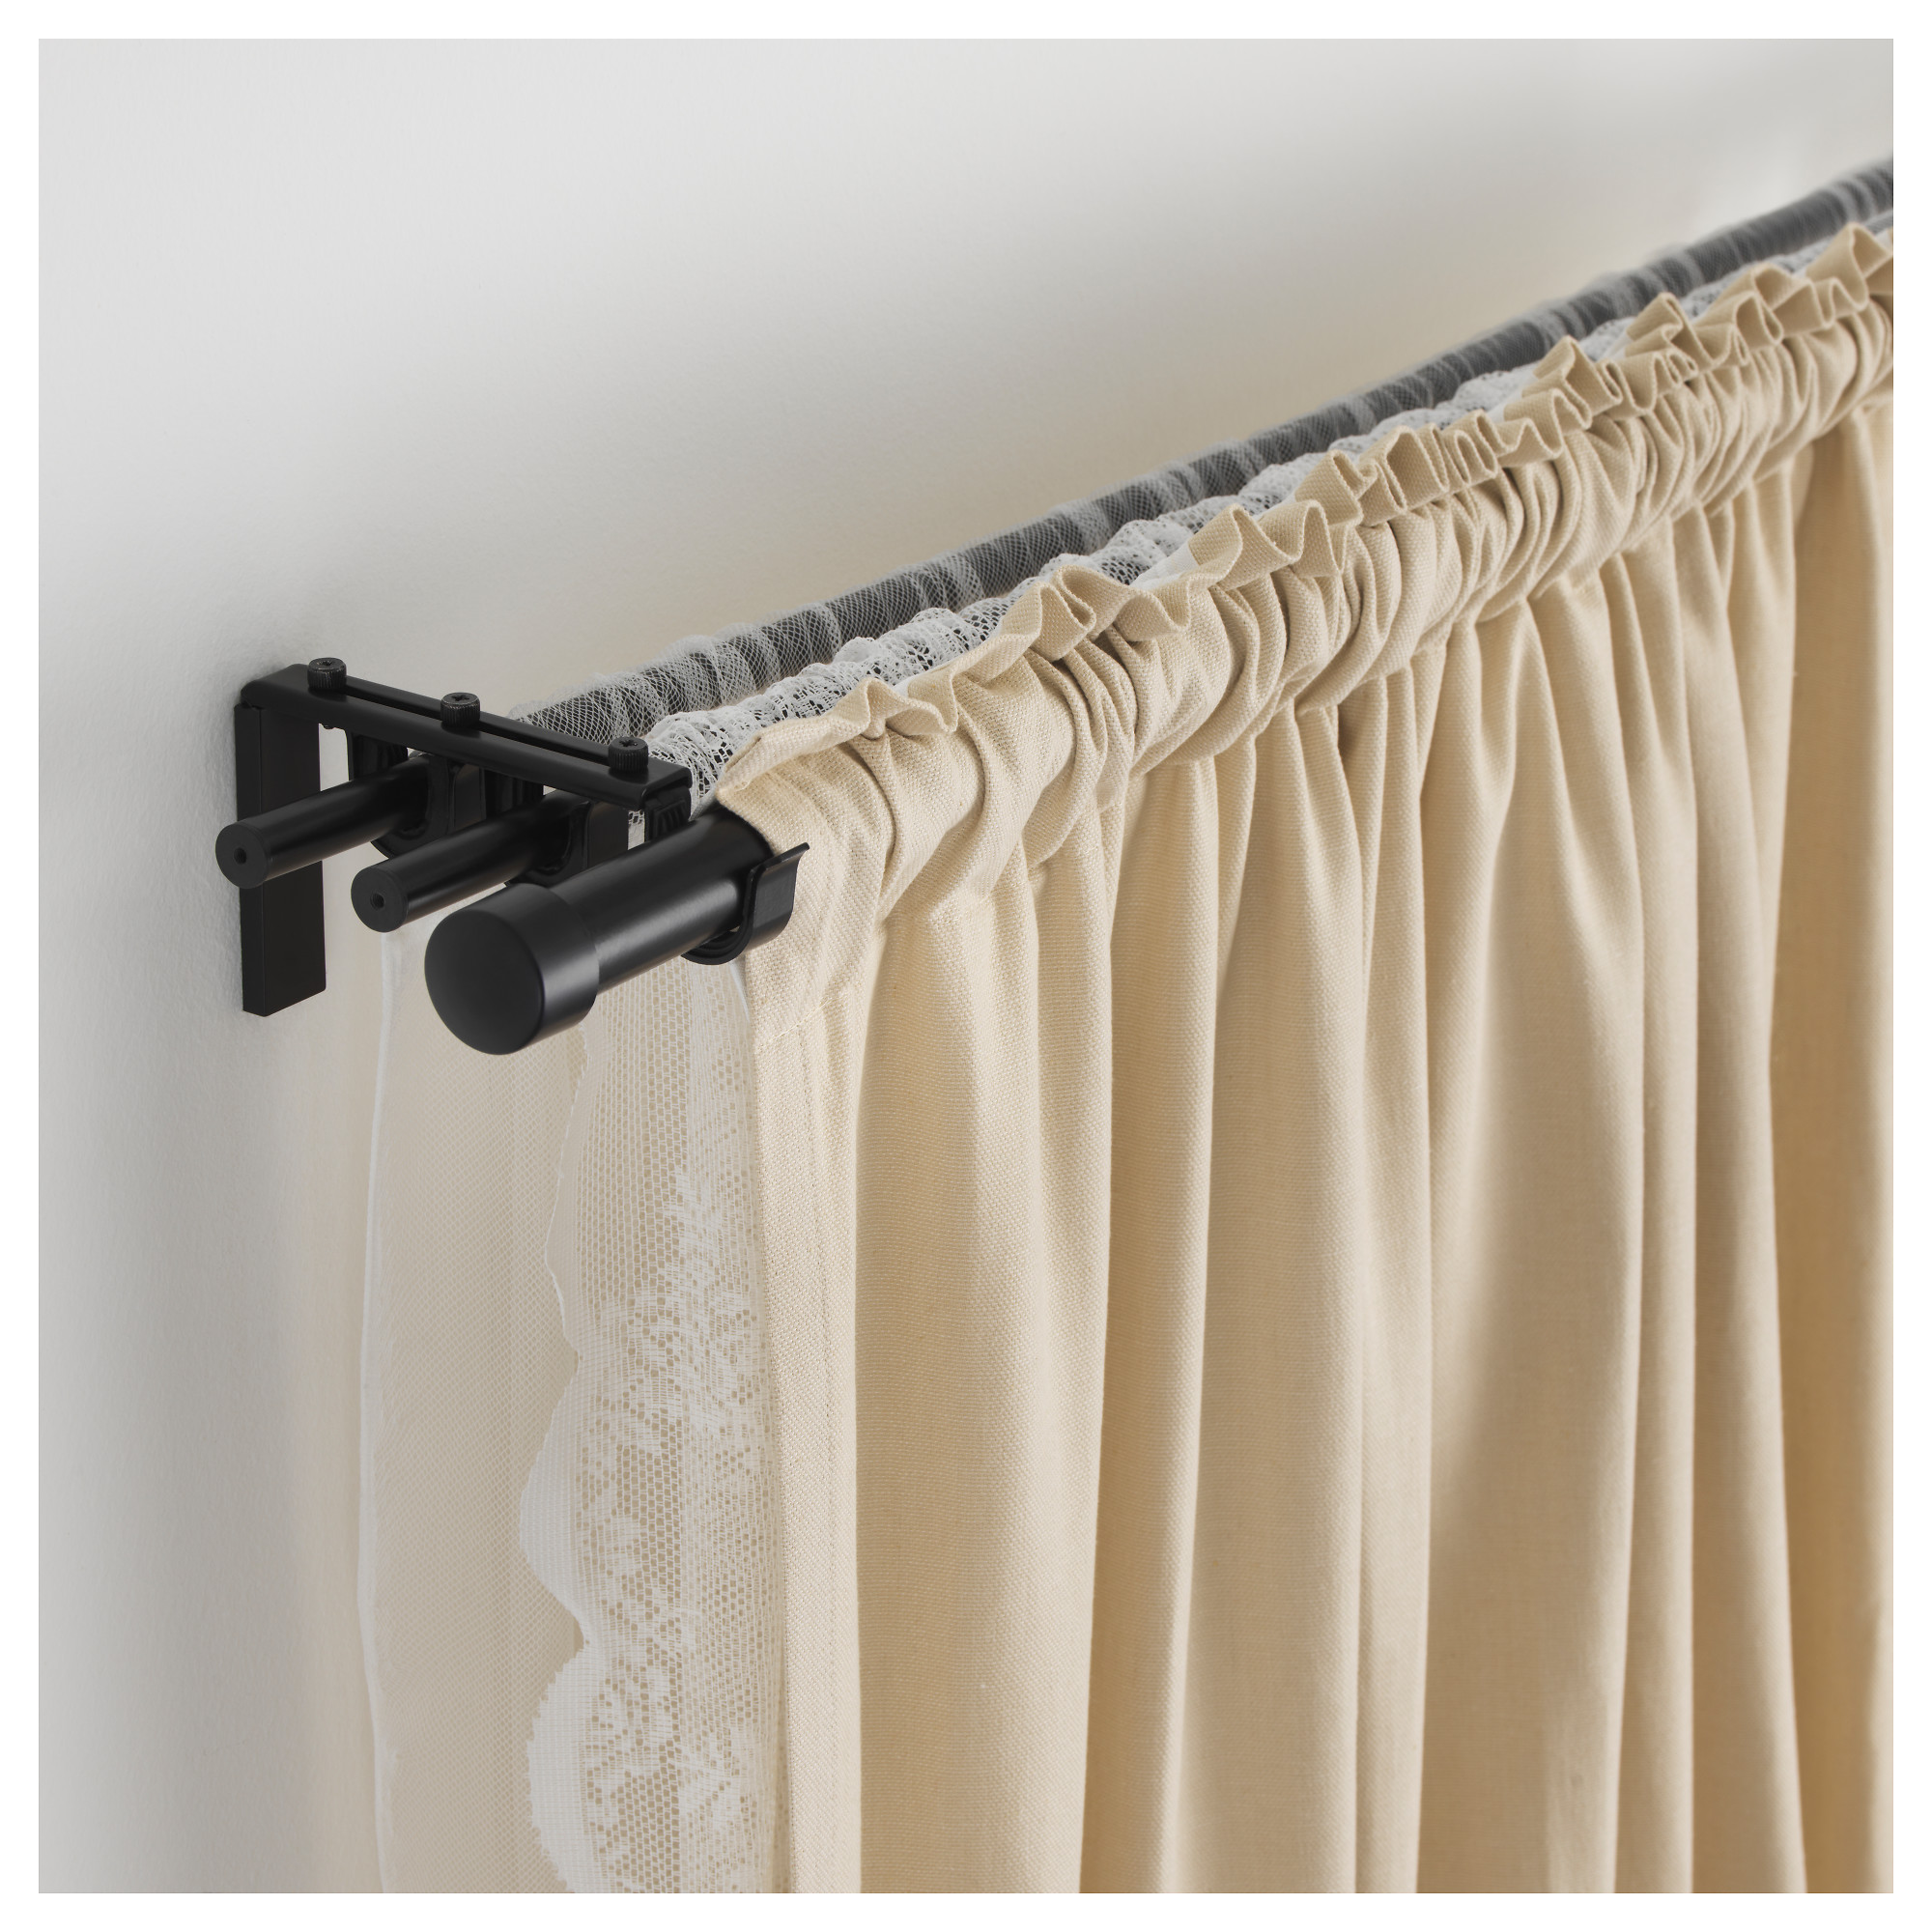 Racka Curtain Rod Black Ikea Hong Kong